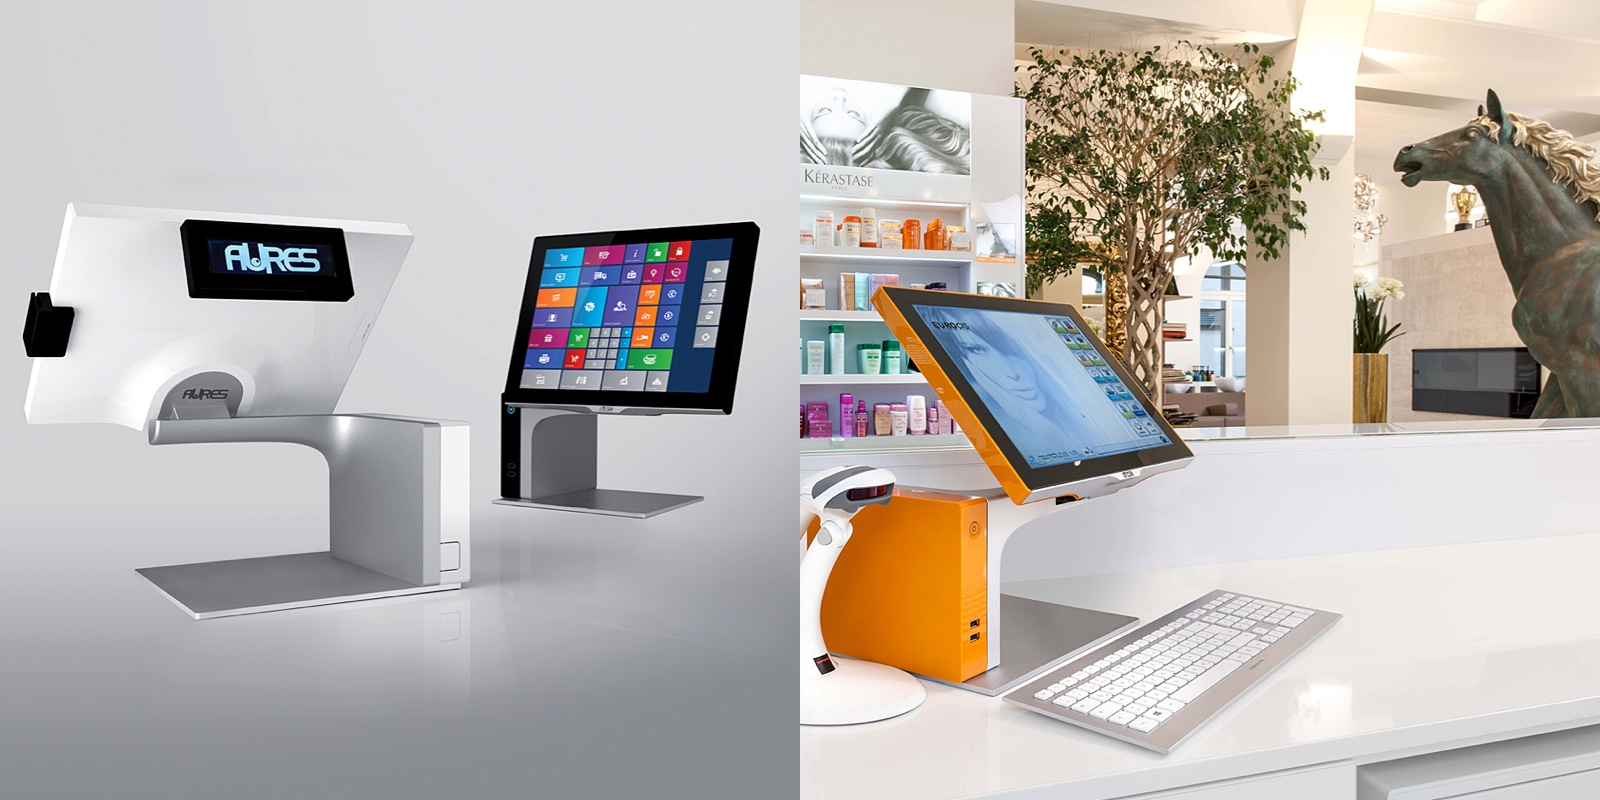 Things To Consider When Investing In An Epos System